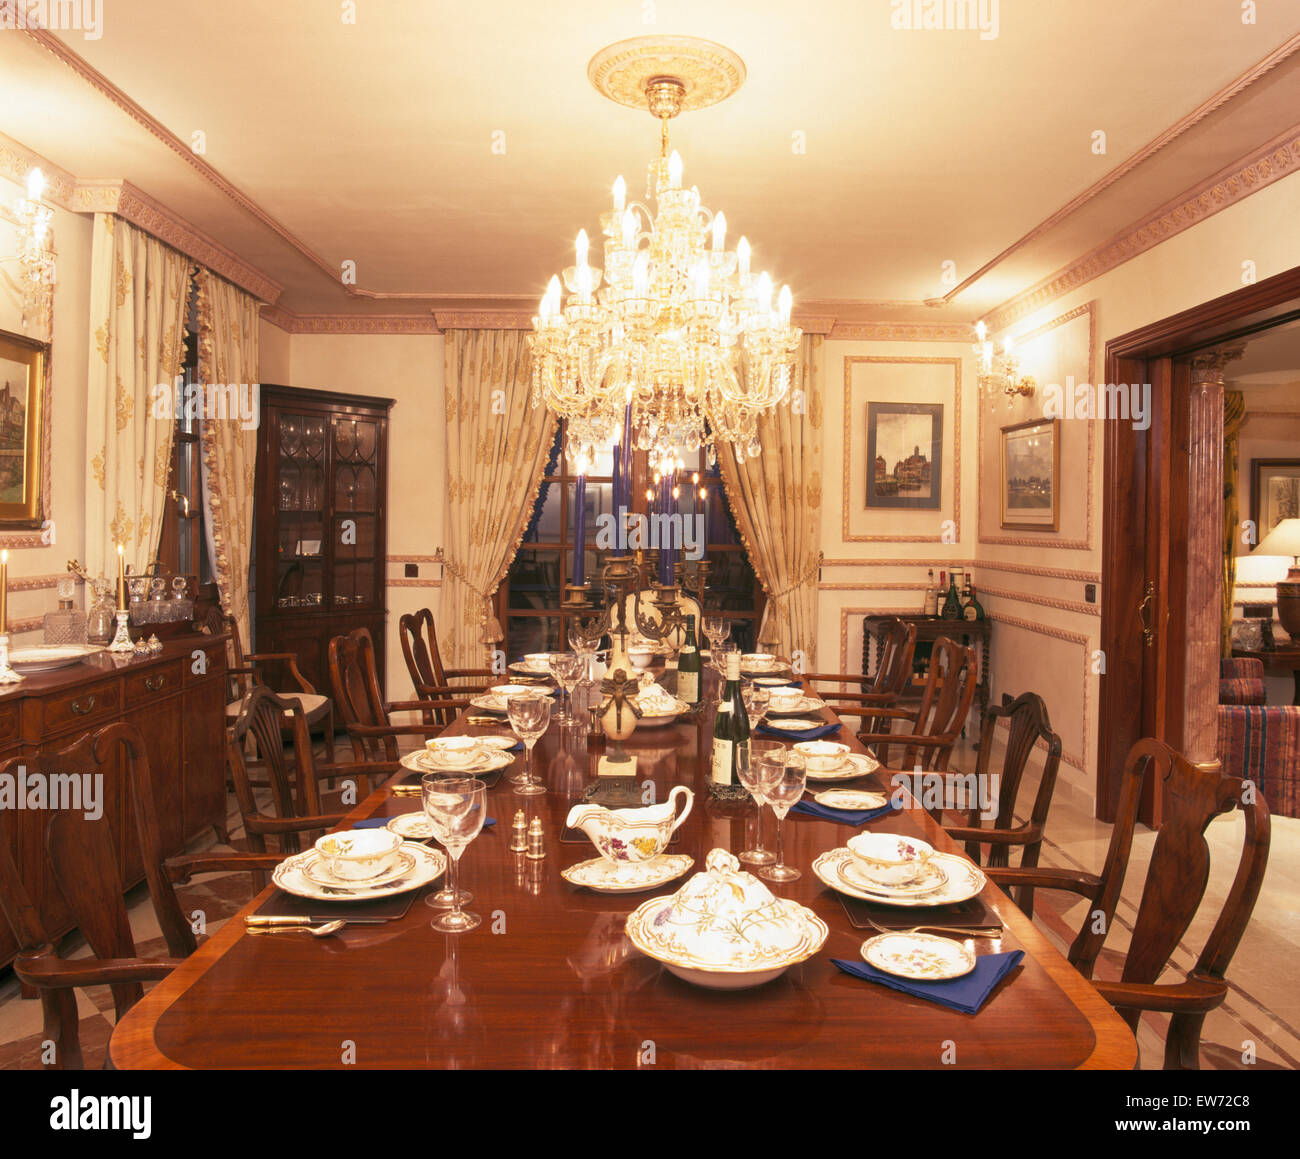 Attrayant Large Chandelier Above Table Set For Dinner In Dining Room ...